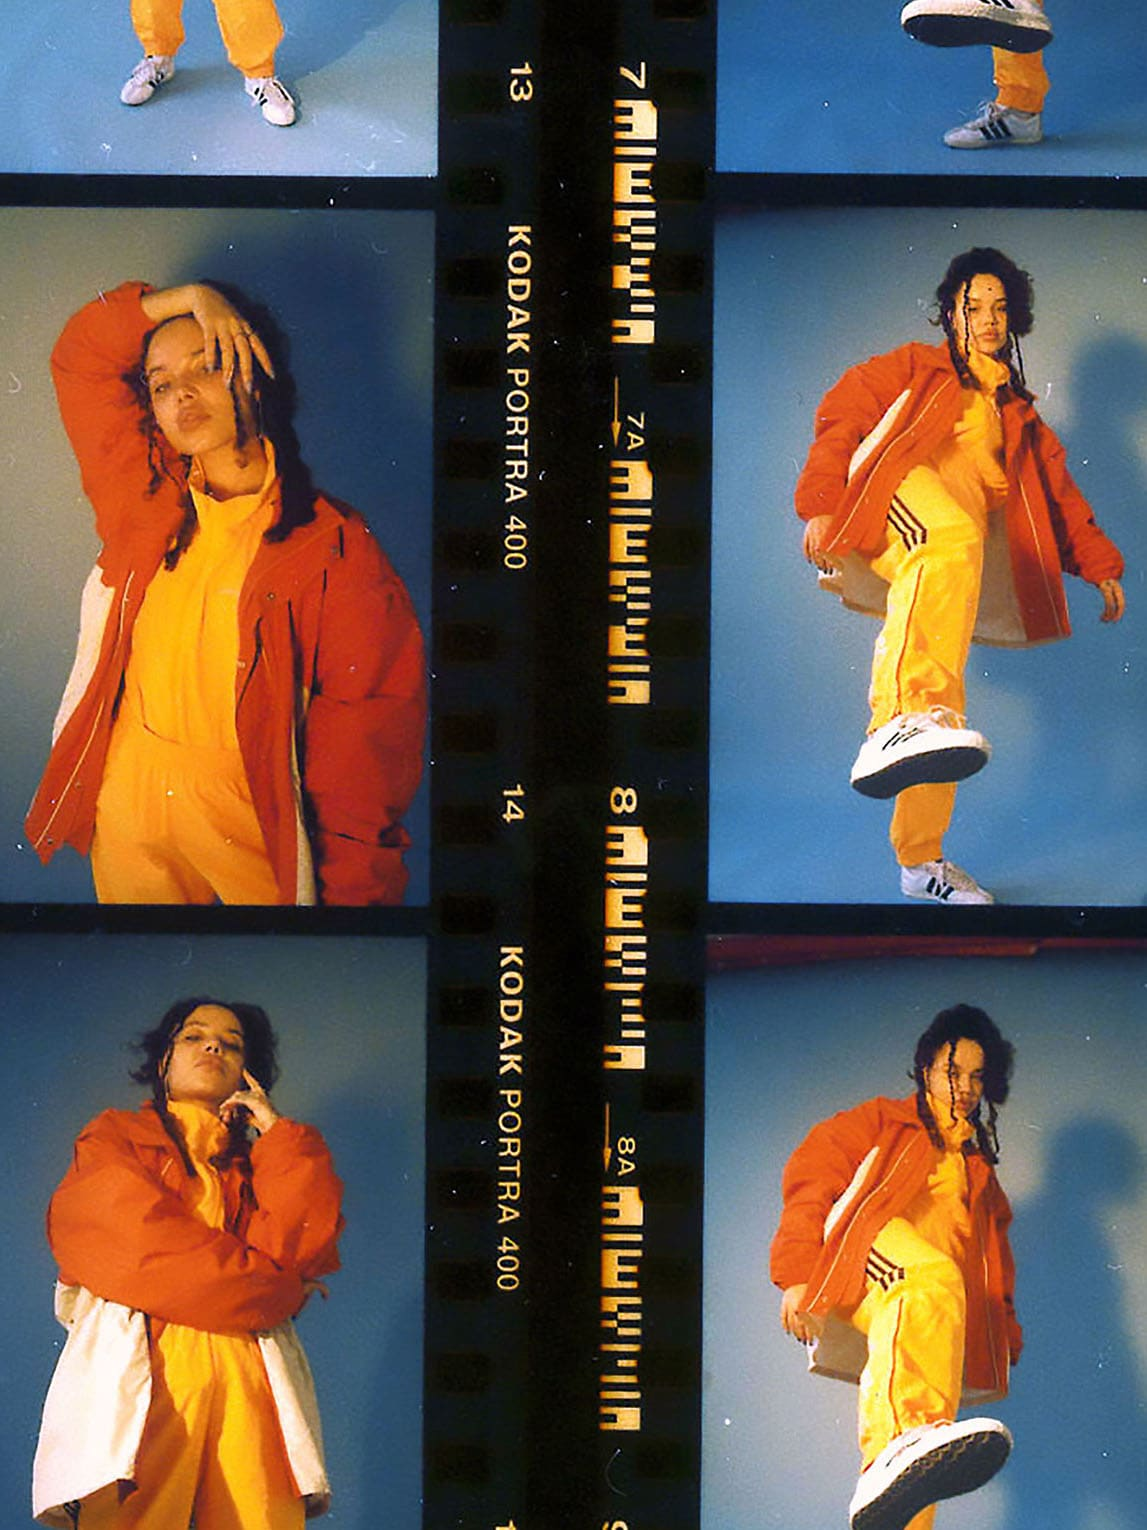 Singer JGrrey posing in different moves in tracksuit and hoodie in film roll of images